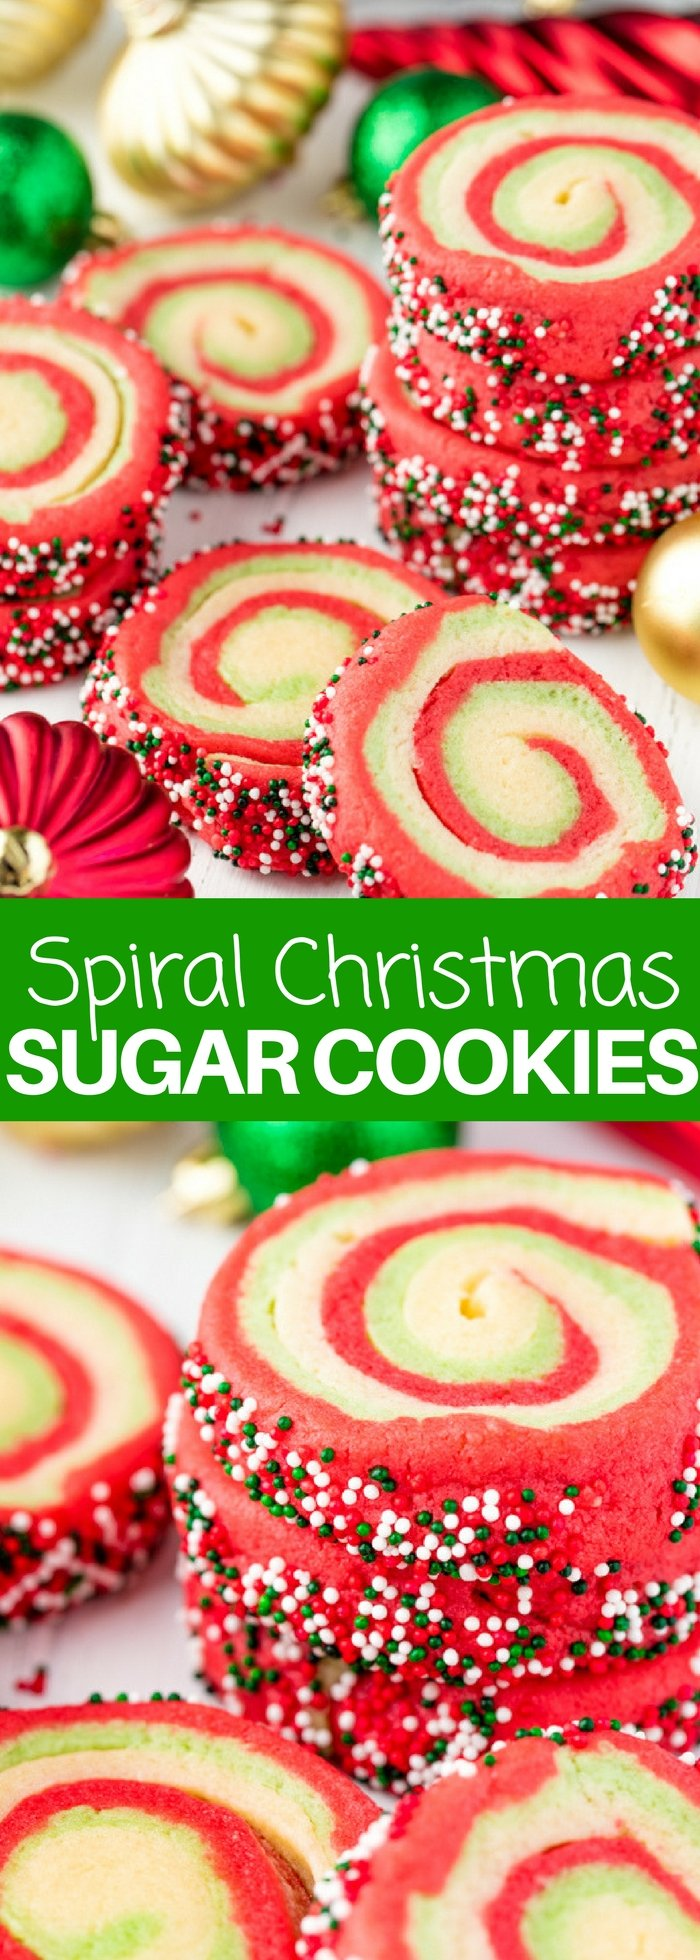 These Spiral Christmas Sugar Cookies are soft and chewy and full of festive colors!